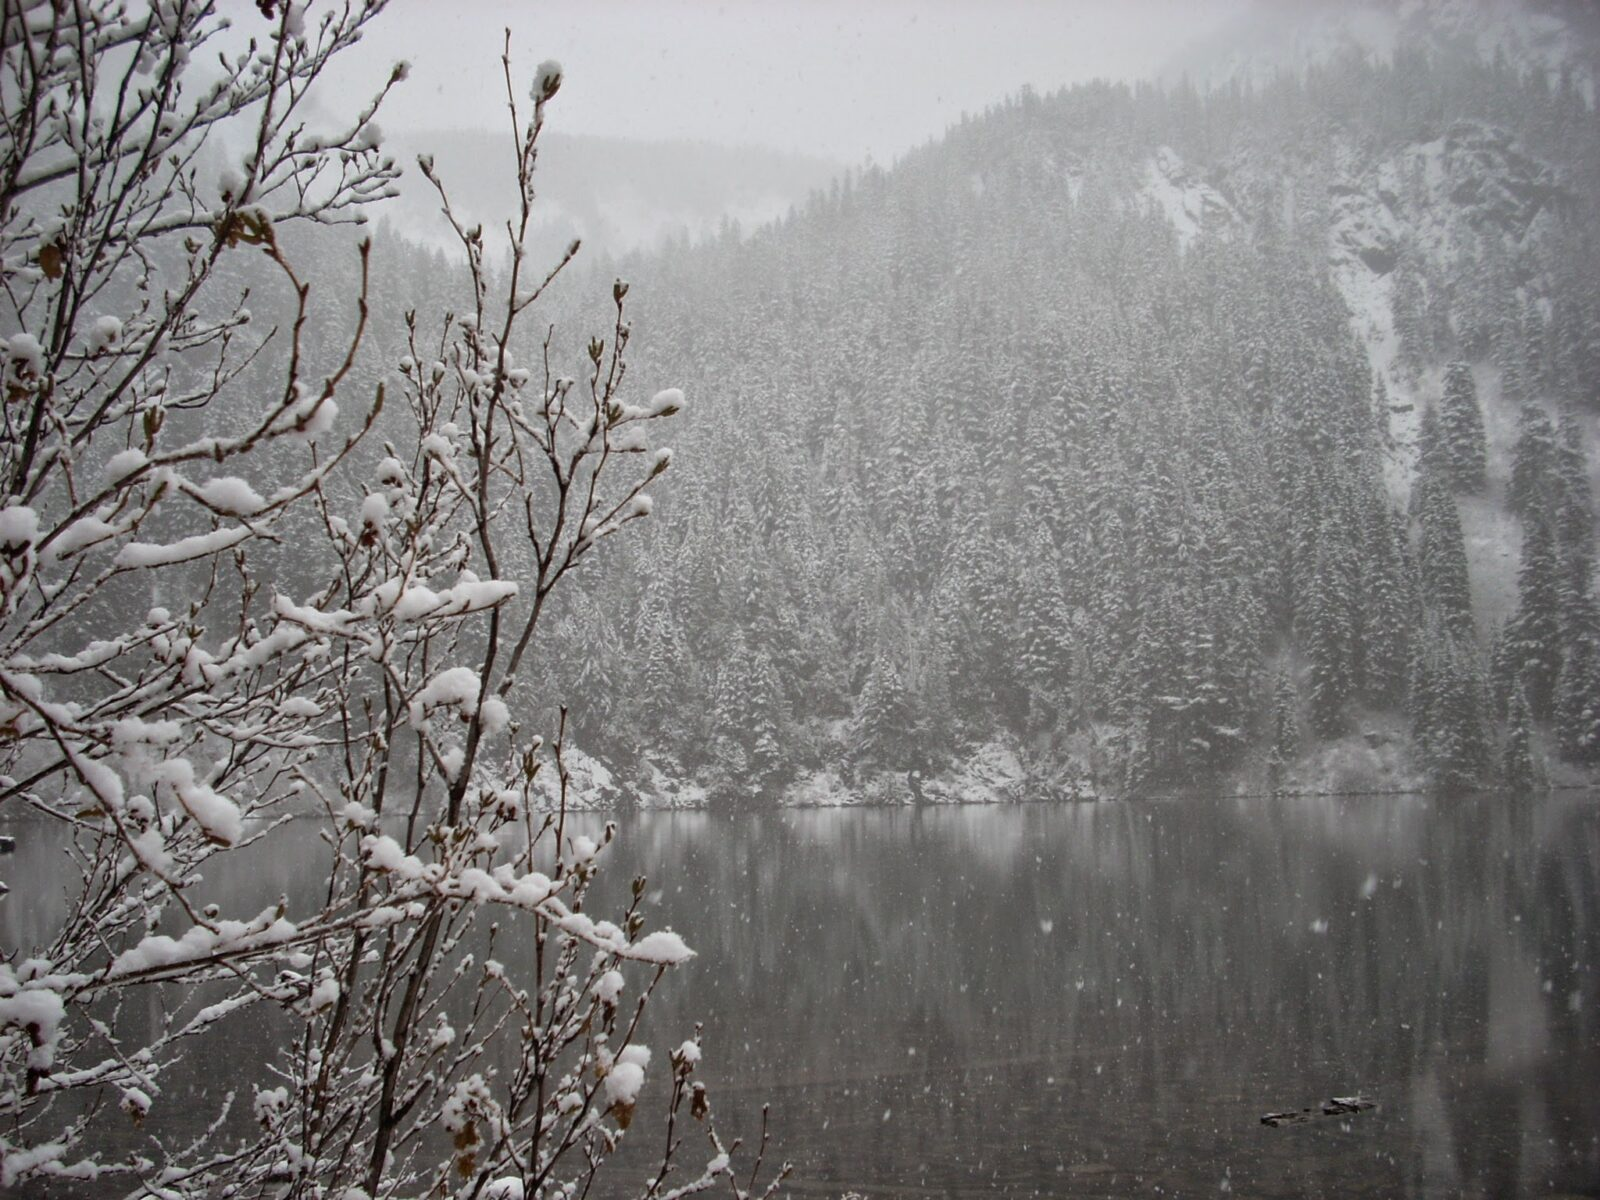 Annette Lake is an alpine lake near Snoqualmie Pass. Here the lake is receiving its first snowfall of the year. Visibility is low and you can see big white flakes fallign on the lake and forest. Snowy evergreen trees are seen across the lake